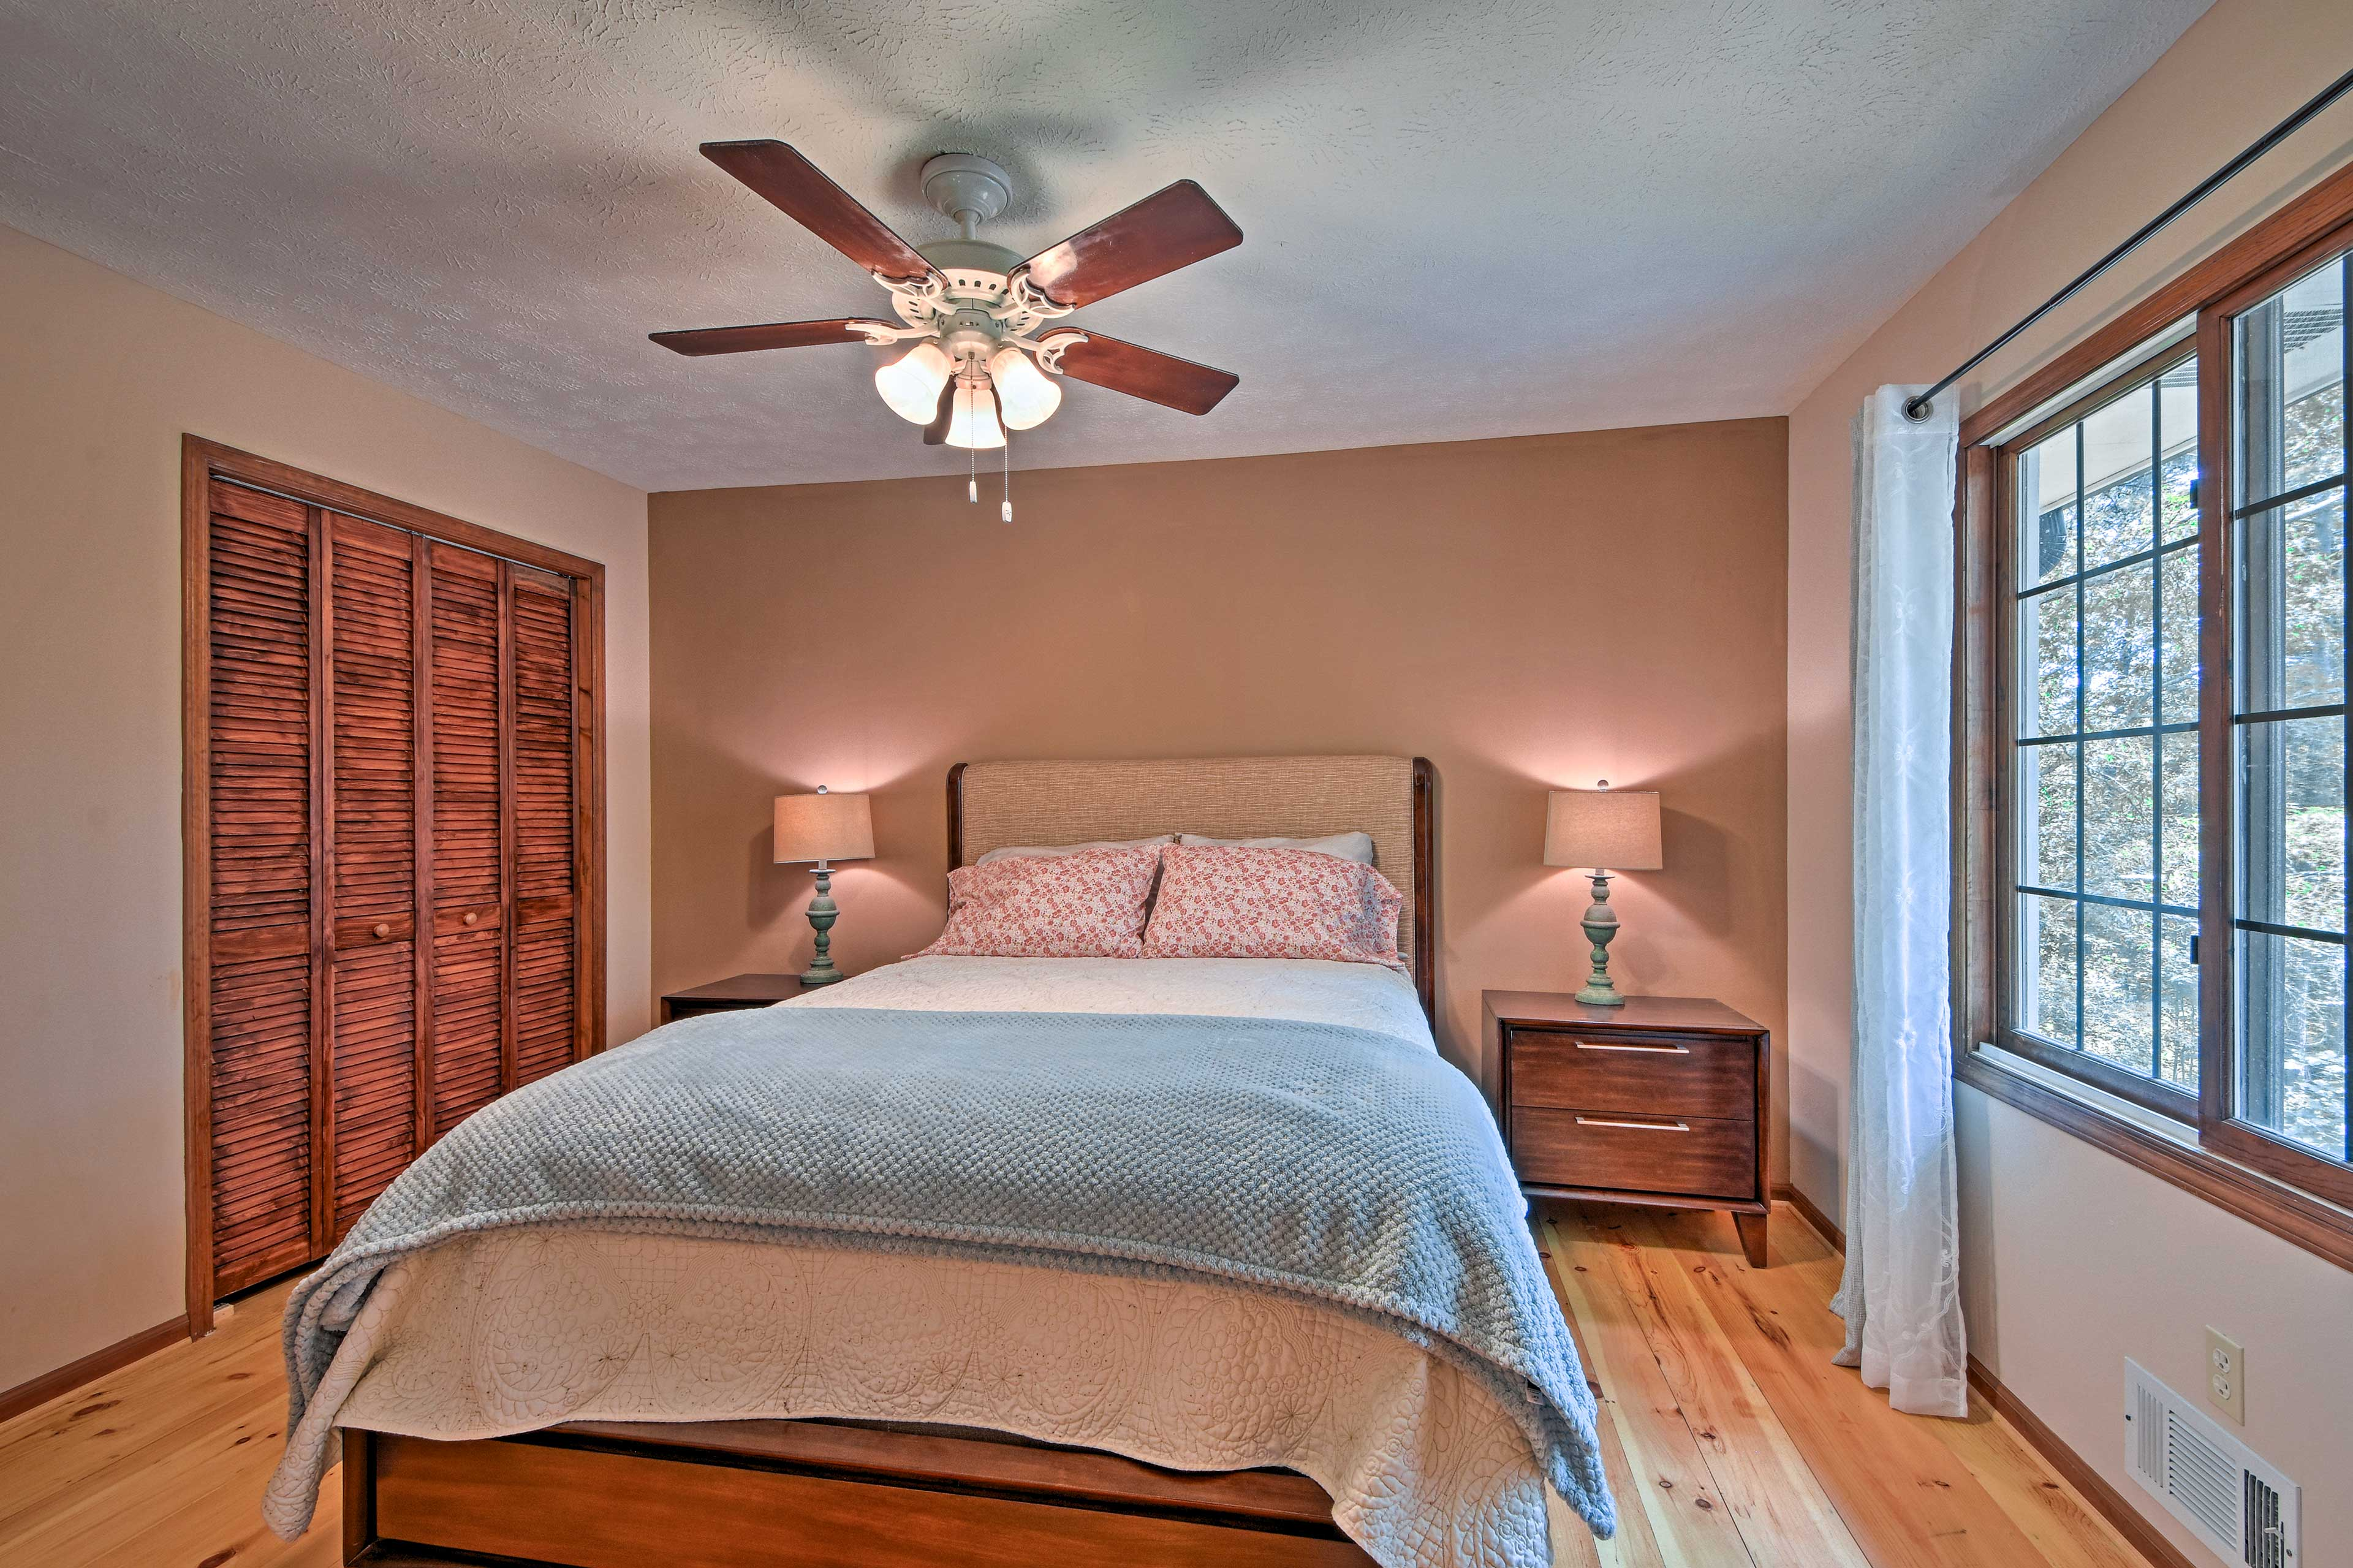 Crawl into this queen bed each night for a blissful slumber.